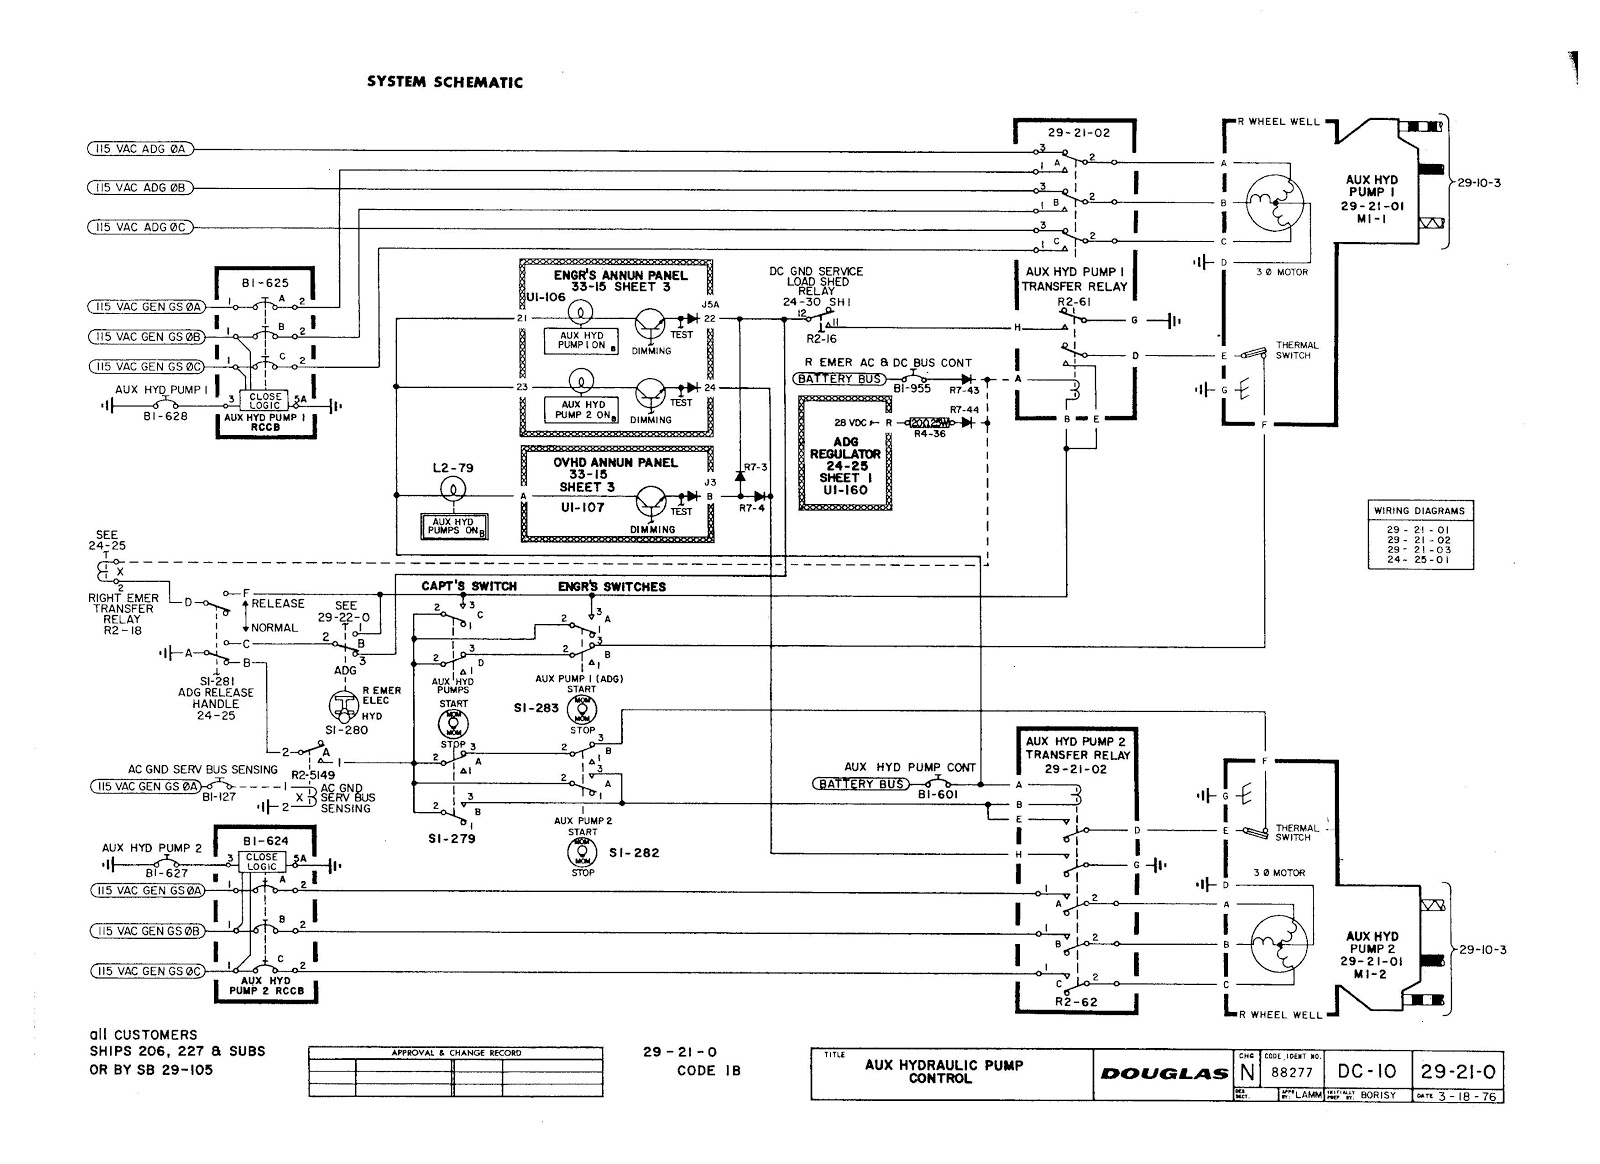 Wiring Diagrams For Aircraft Trusted Diagram Online David Clark Headset Part 66 Virtual School And Schematic